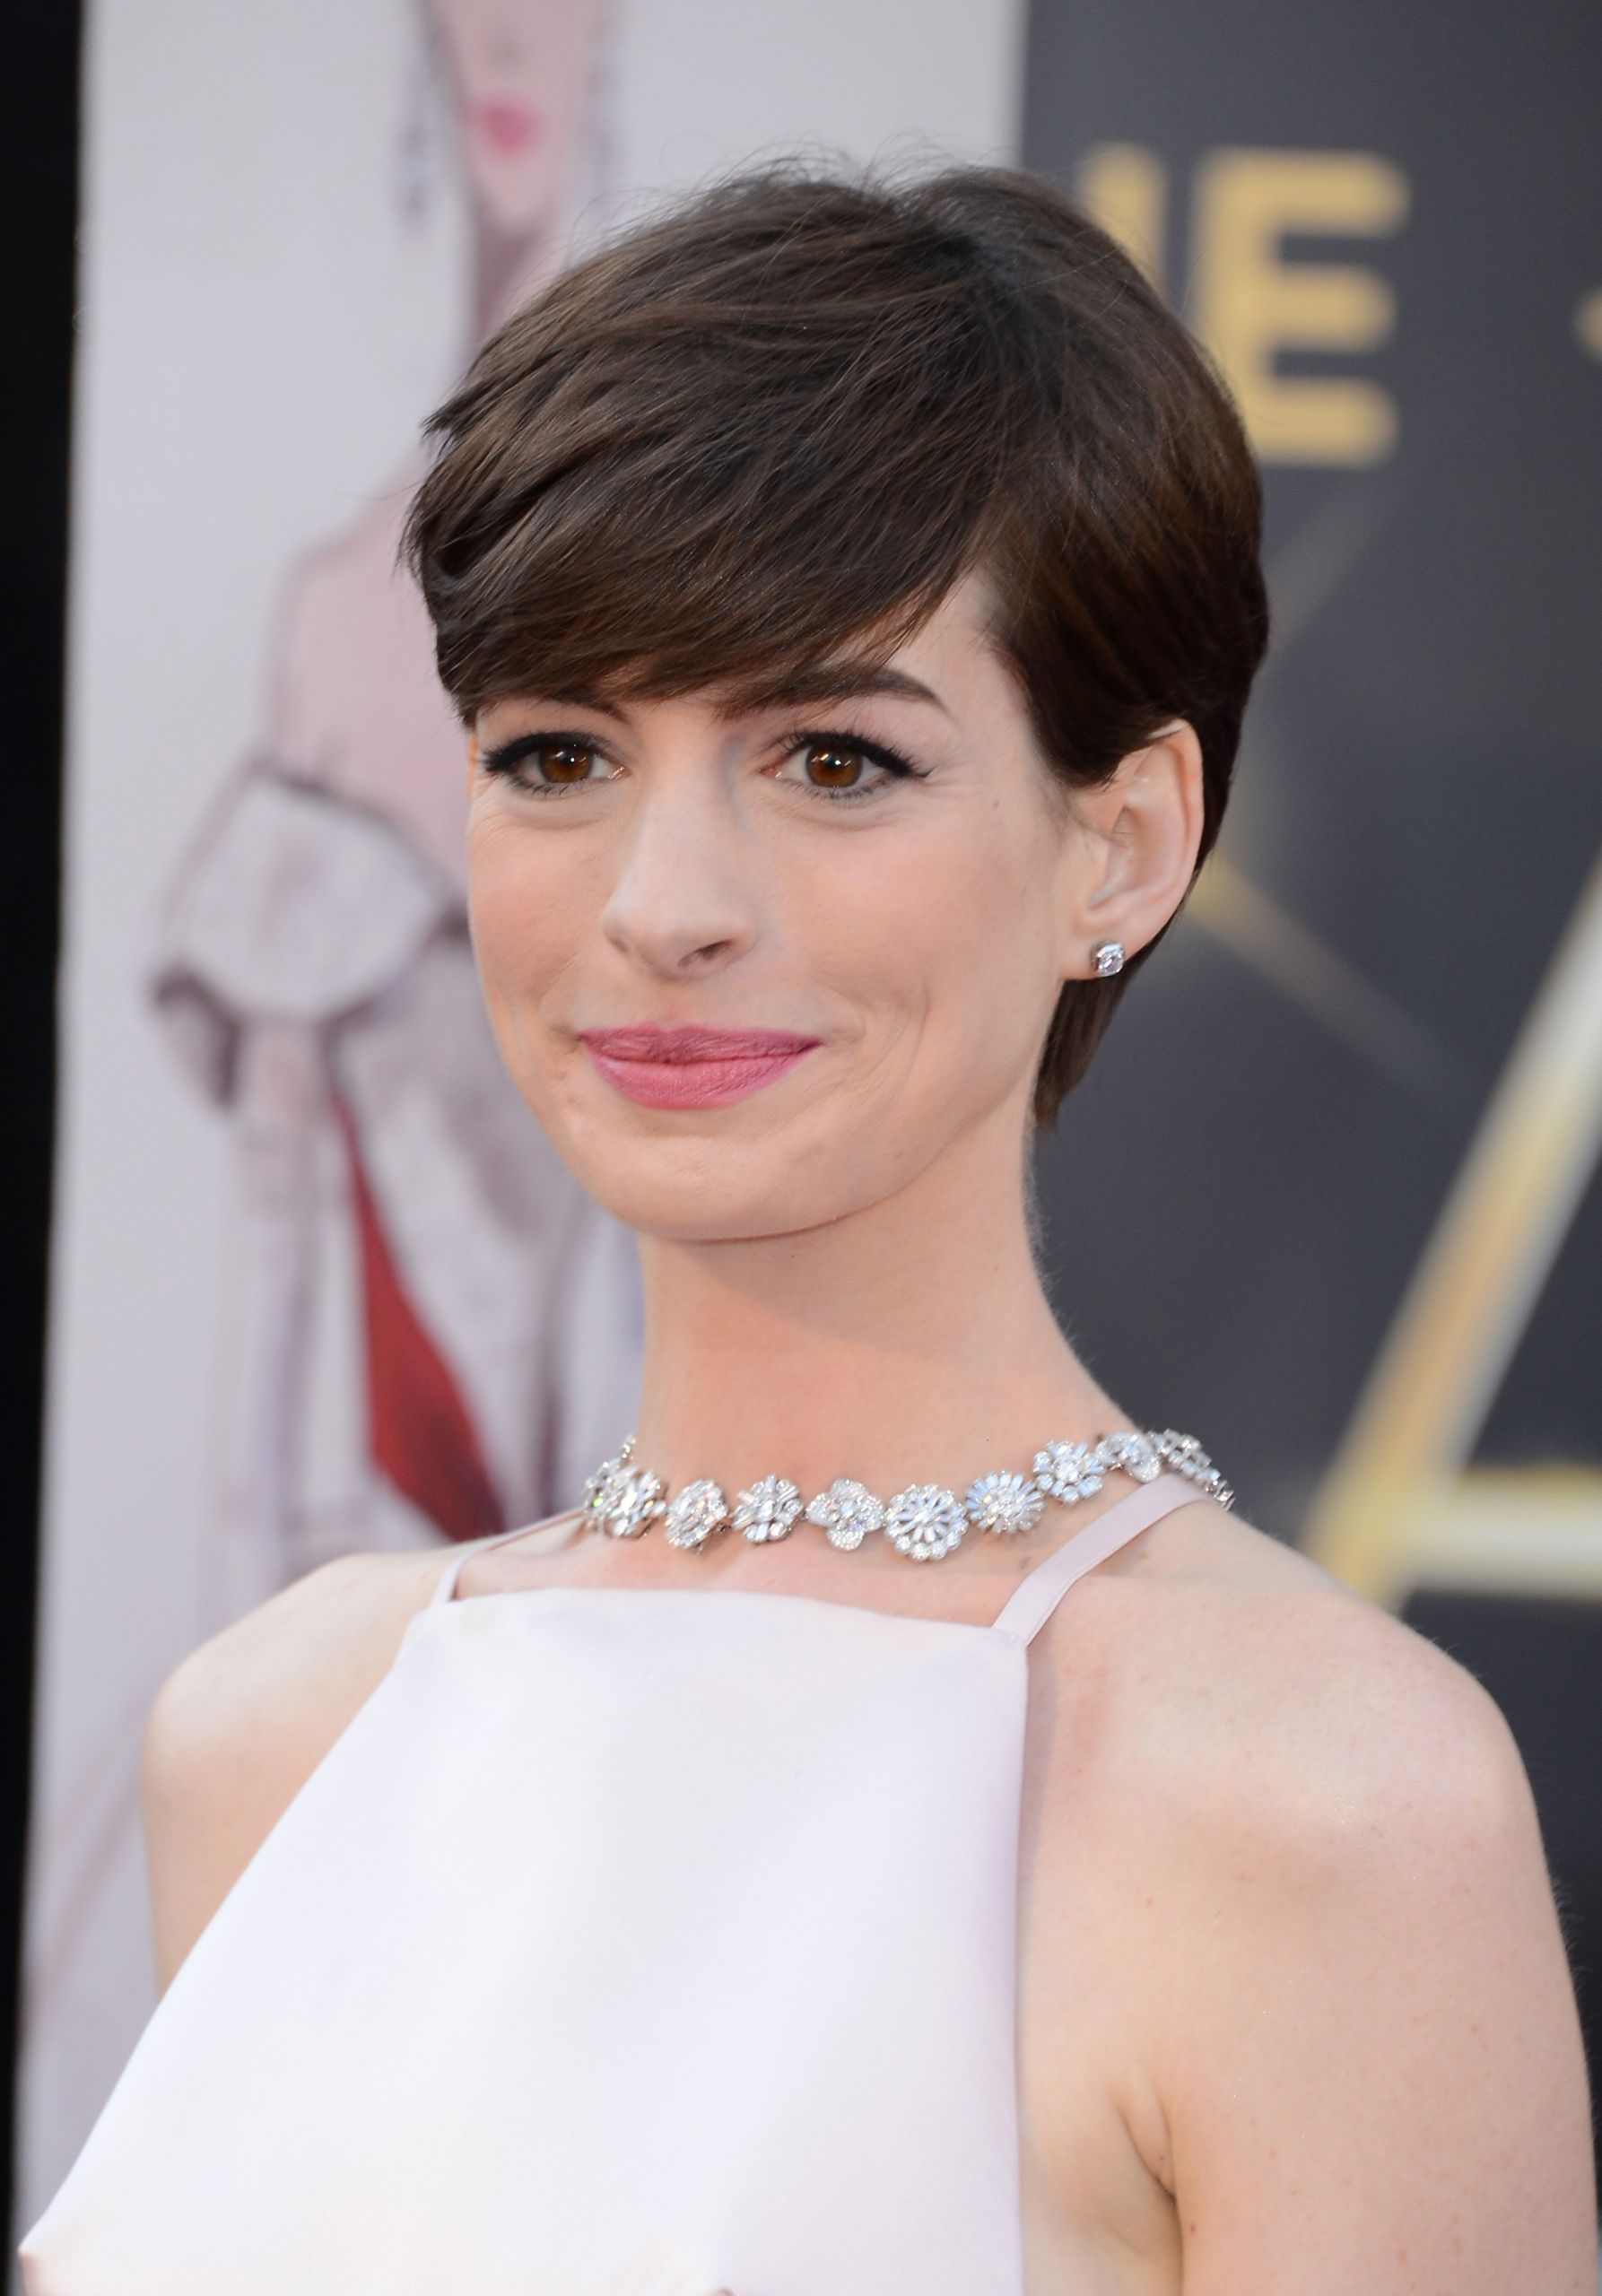 Prom Short Hairstyles  25 Prom Hairstyles For Short Hair